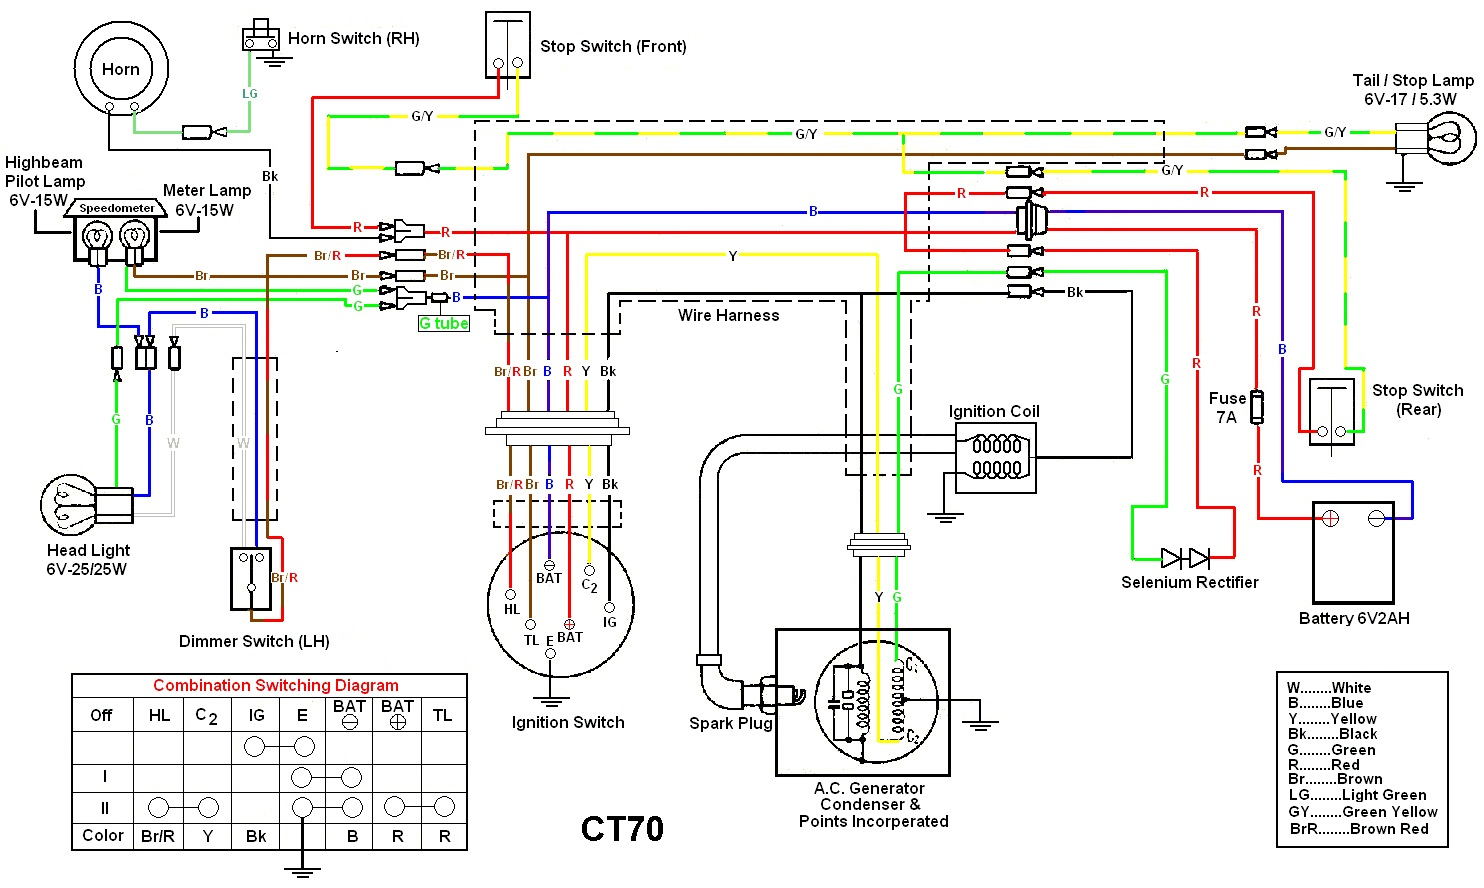 Ford Generator Wiring 1978 Real Diagram Tractor Tear It Up Fix Repeat Ct70 Battery Set 1935 9n 12 Volt Conversion